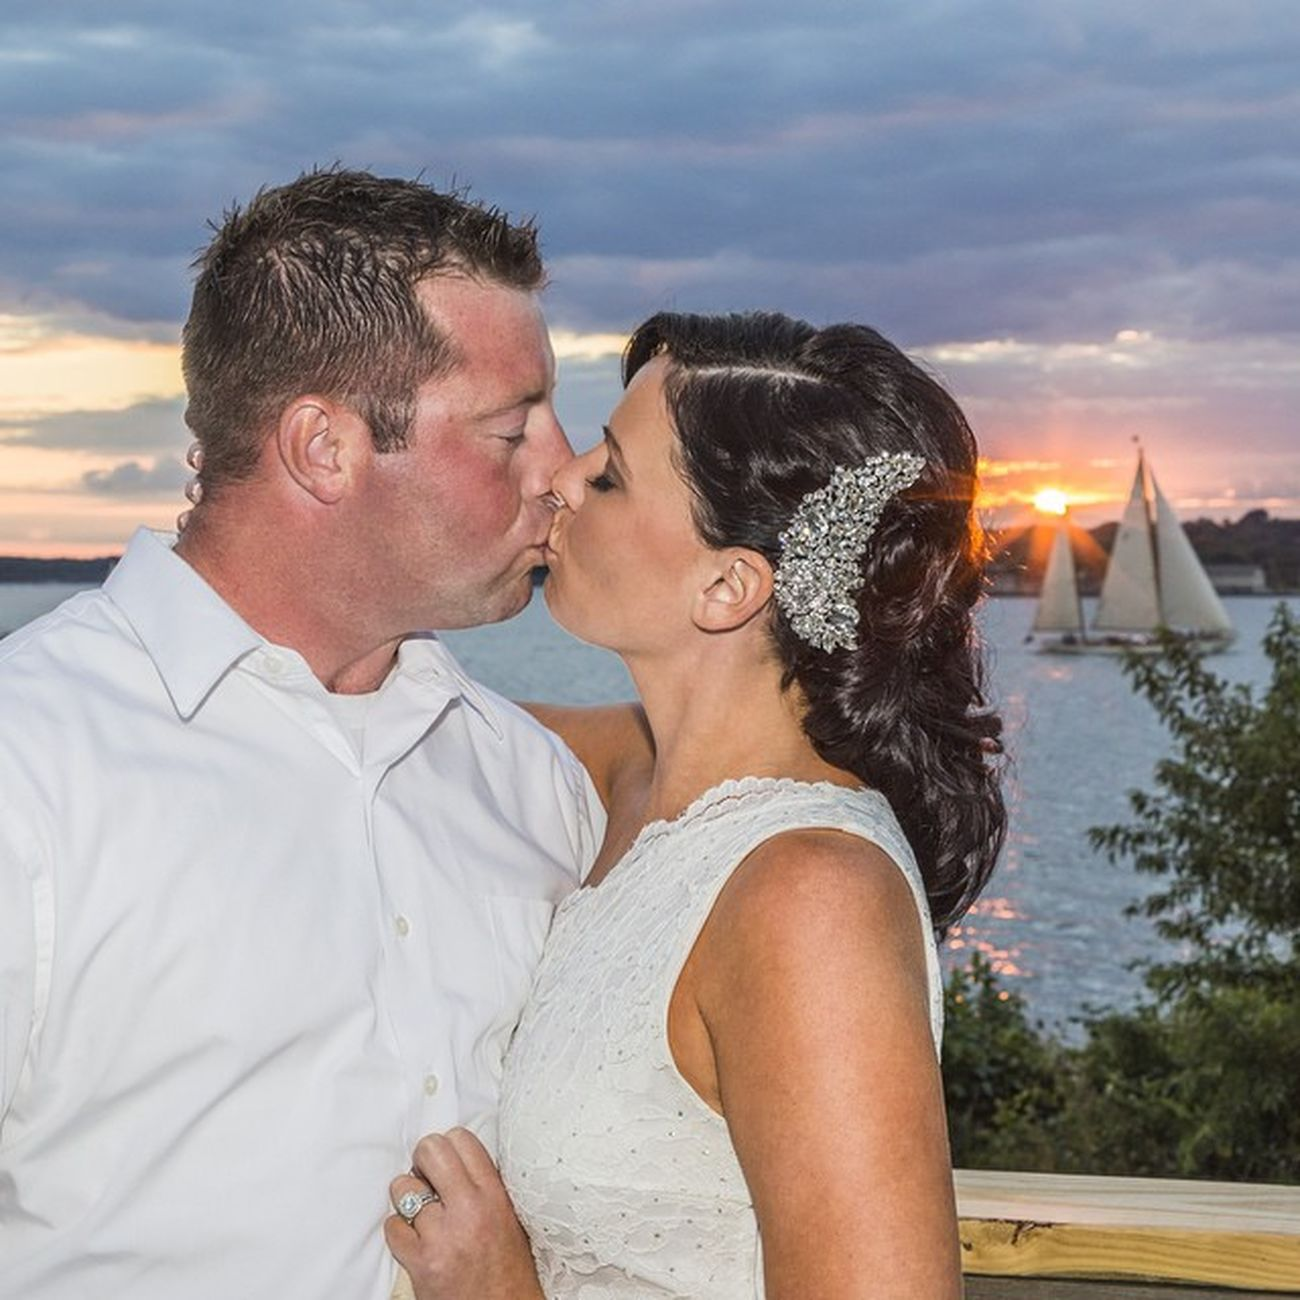 I have the best job!! 100happydays Day88 Lovemyjob Lovemyclients photogtapher fortadams newport newportri wedding love marriage happiness couple bestfriends truelove sunset summer summerwedding sailboat clouds sun kiss